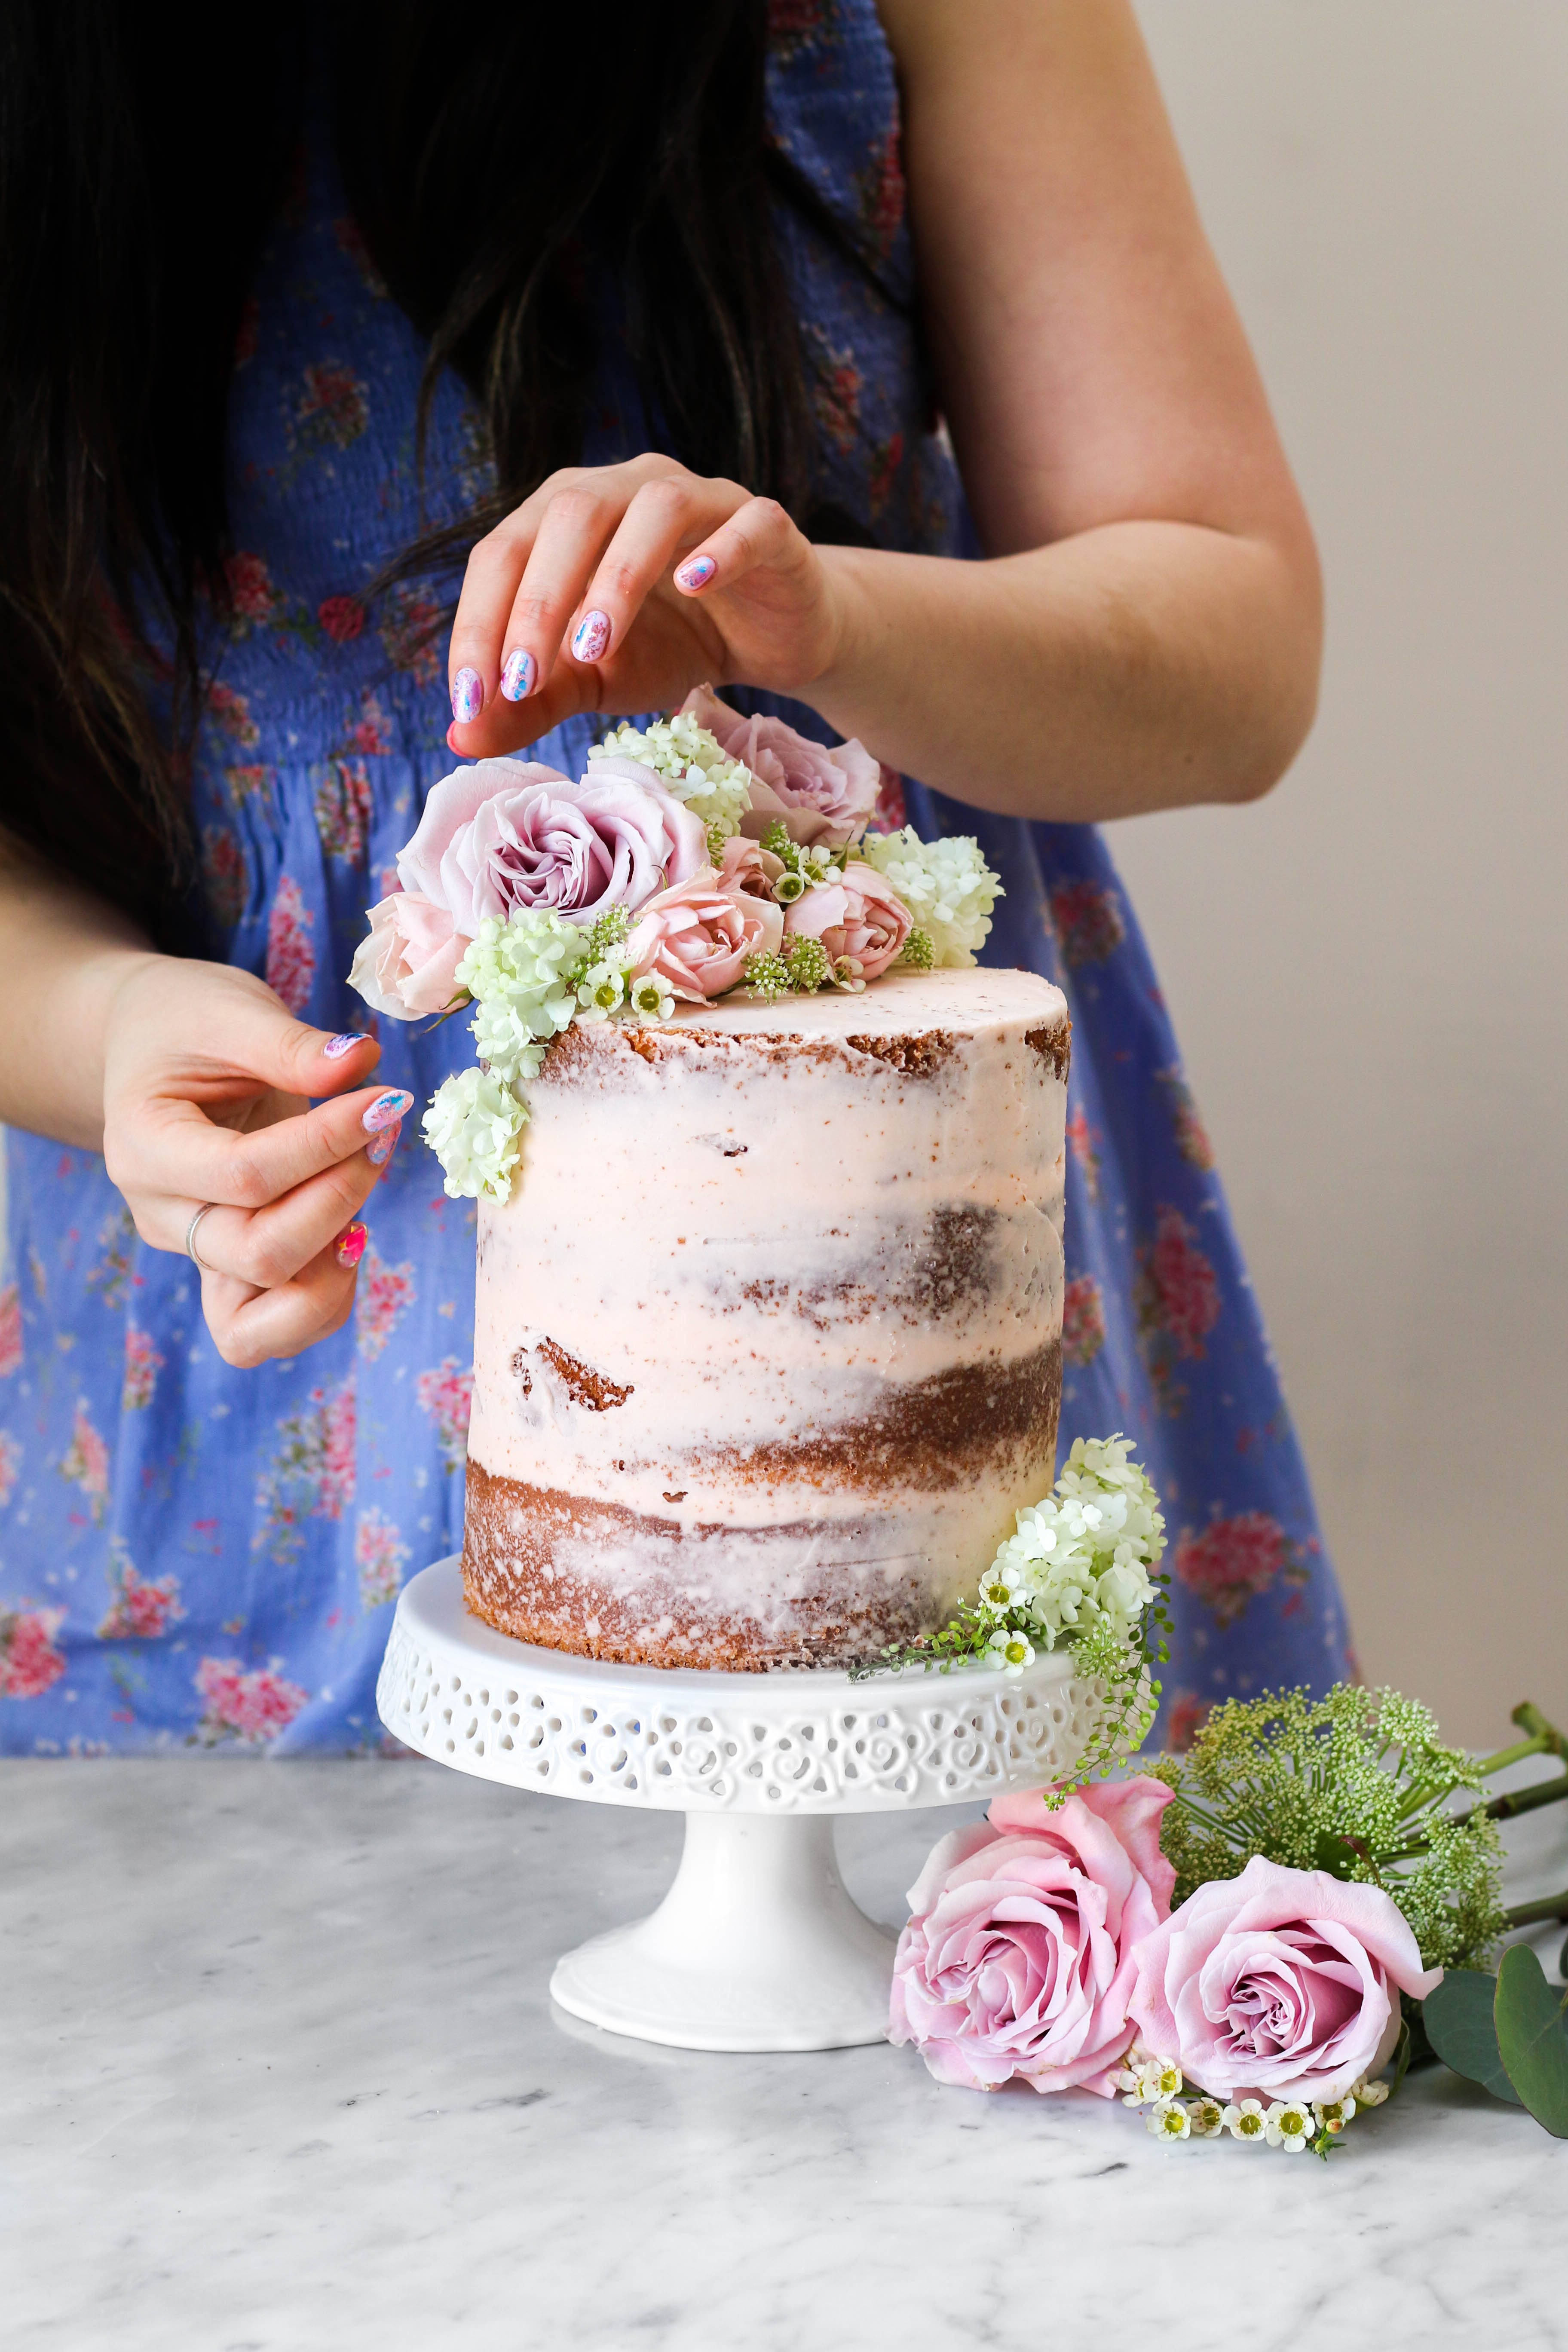 bake a wedding cake at home tutorial tuesday cakes 101 baked 11014